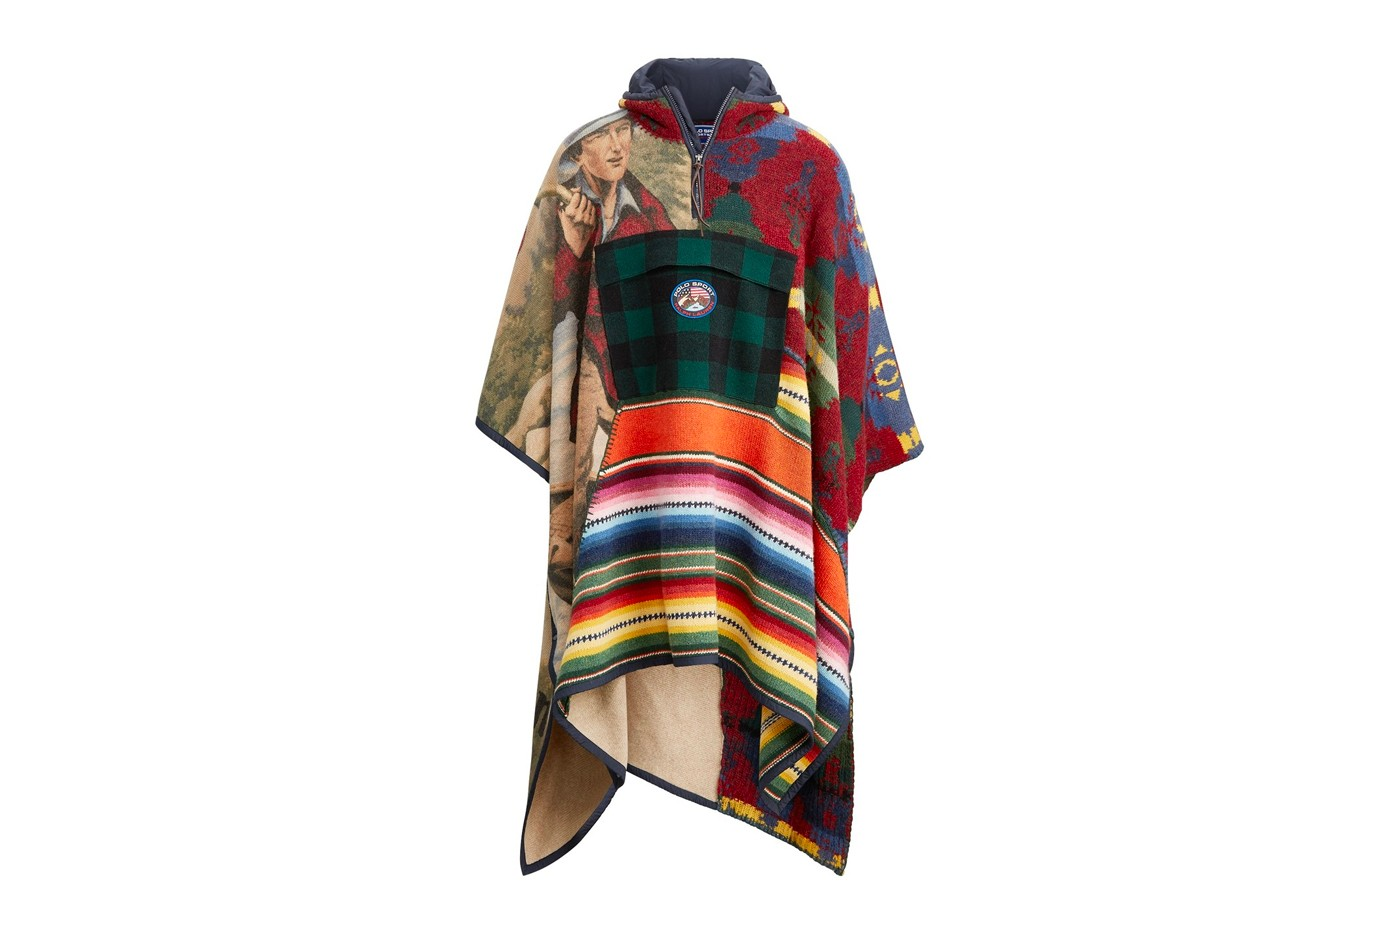 Polo Ralph Lauren Polo Sport Outdoor collection poncho patchwork mountaineering trail hiking alpine apparel fall winter 2019 1998 90s reissue